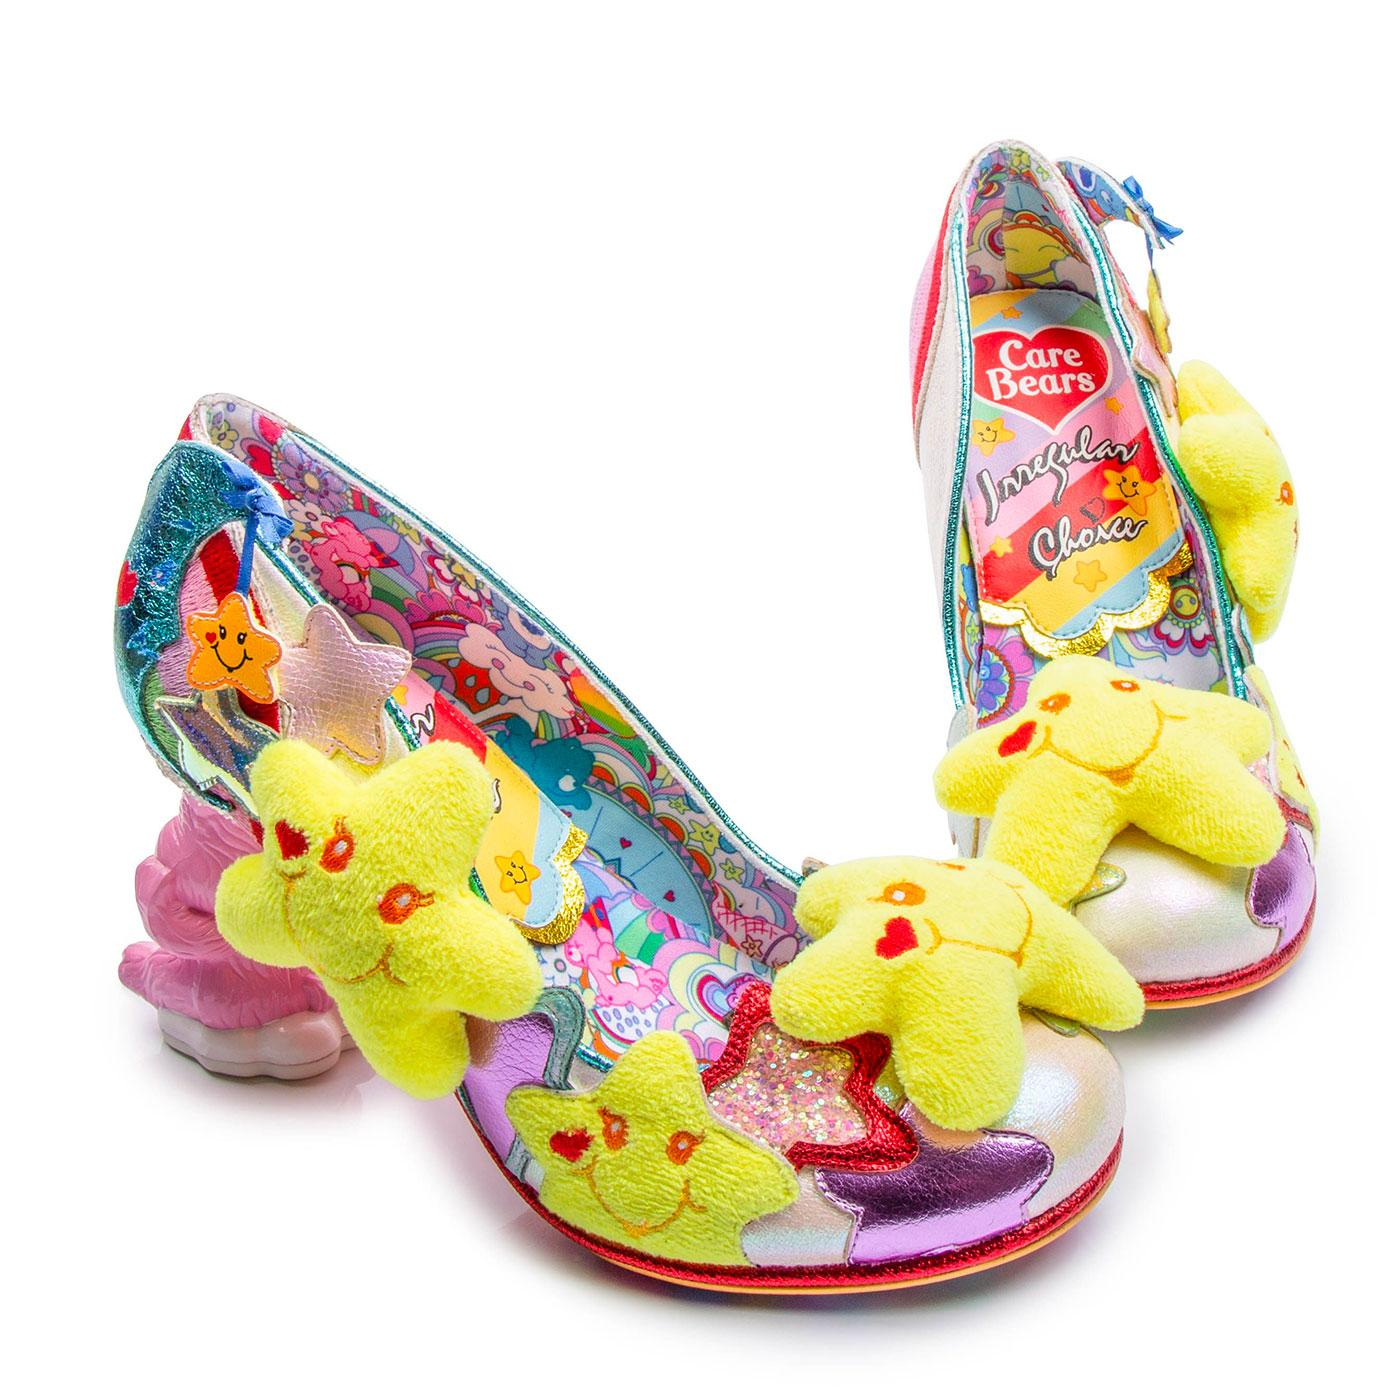 Share Your Care IRREGULAR CHOICE Character Heels